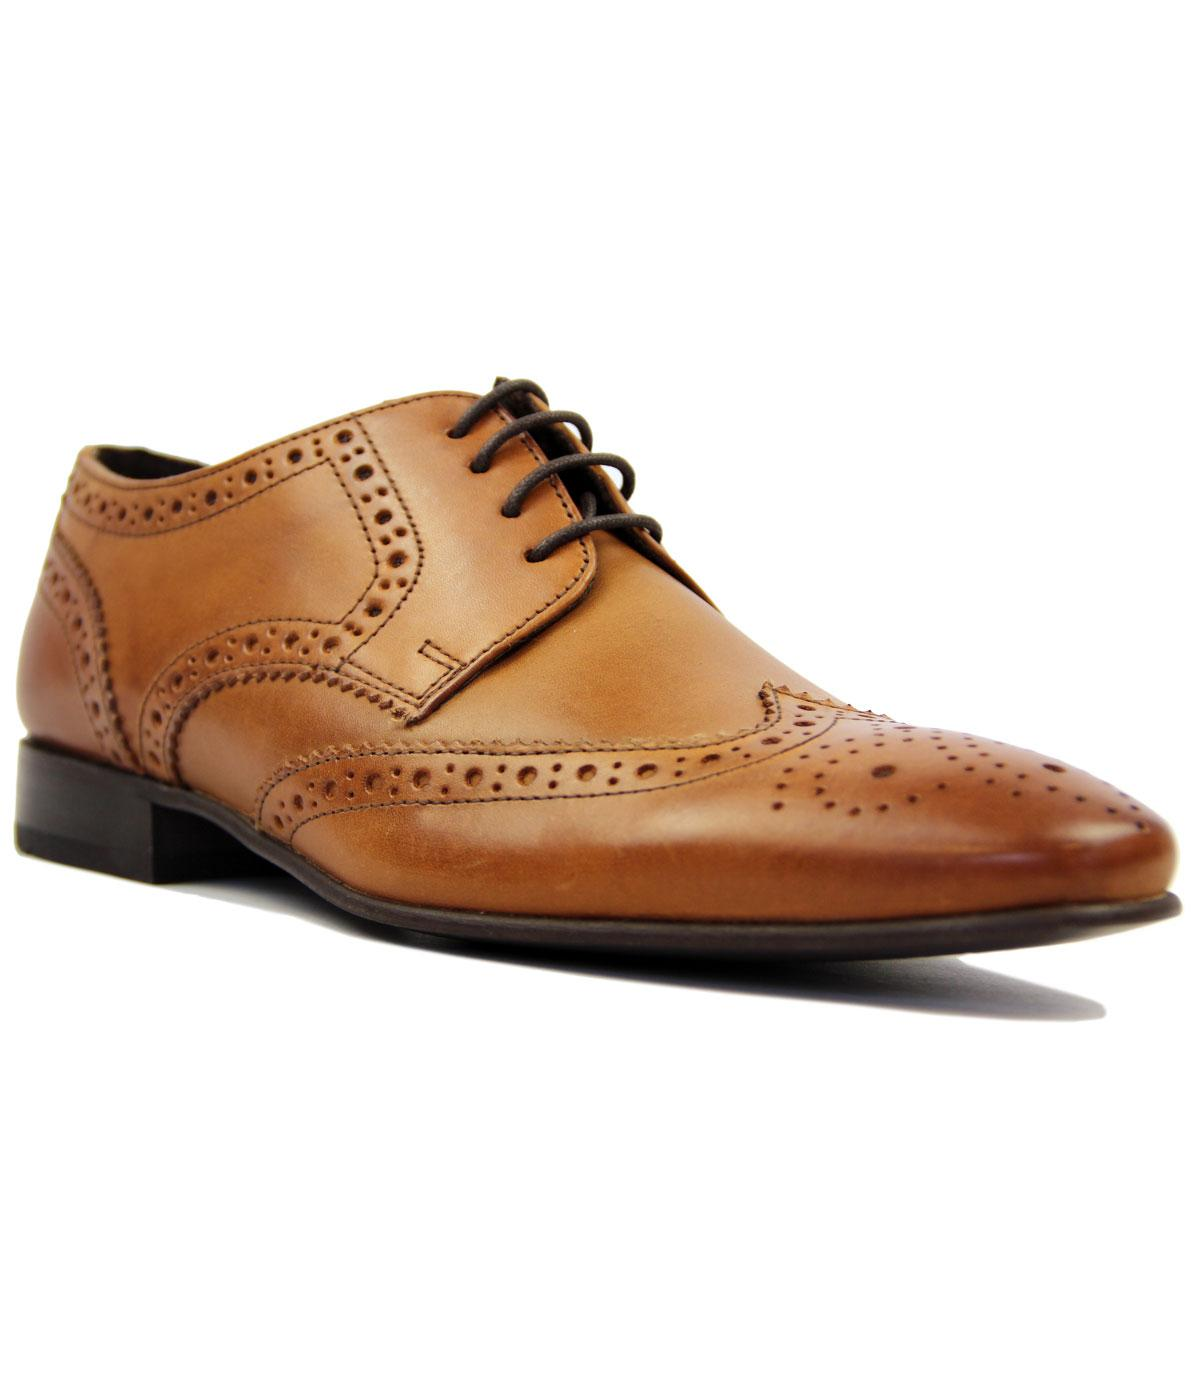 Statham IKON Retro Mod Tan Leather Derby Brogues